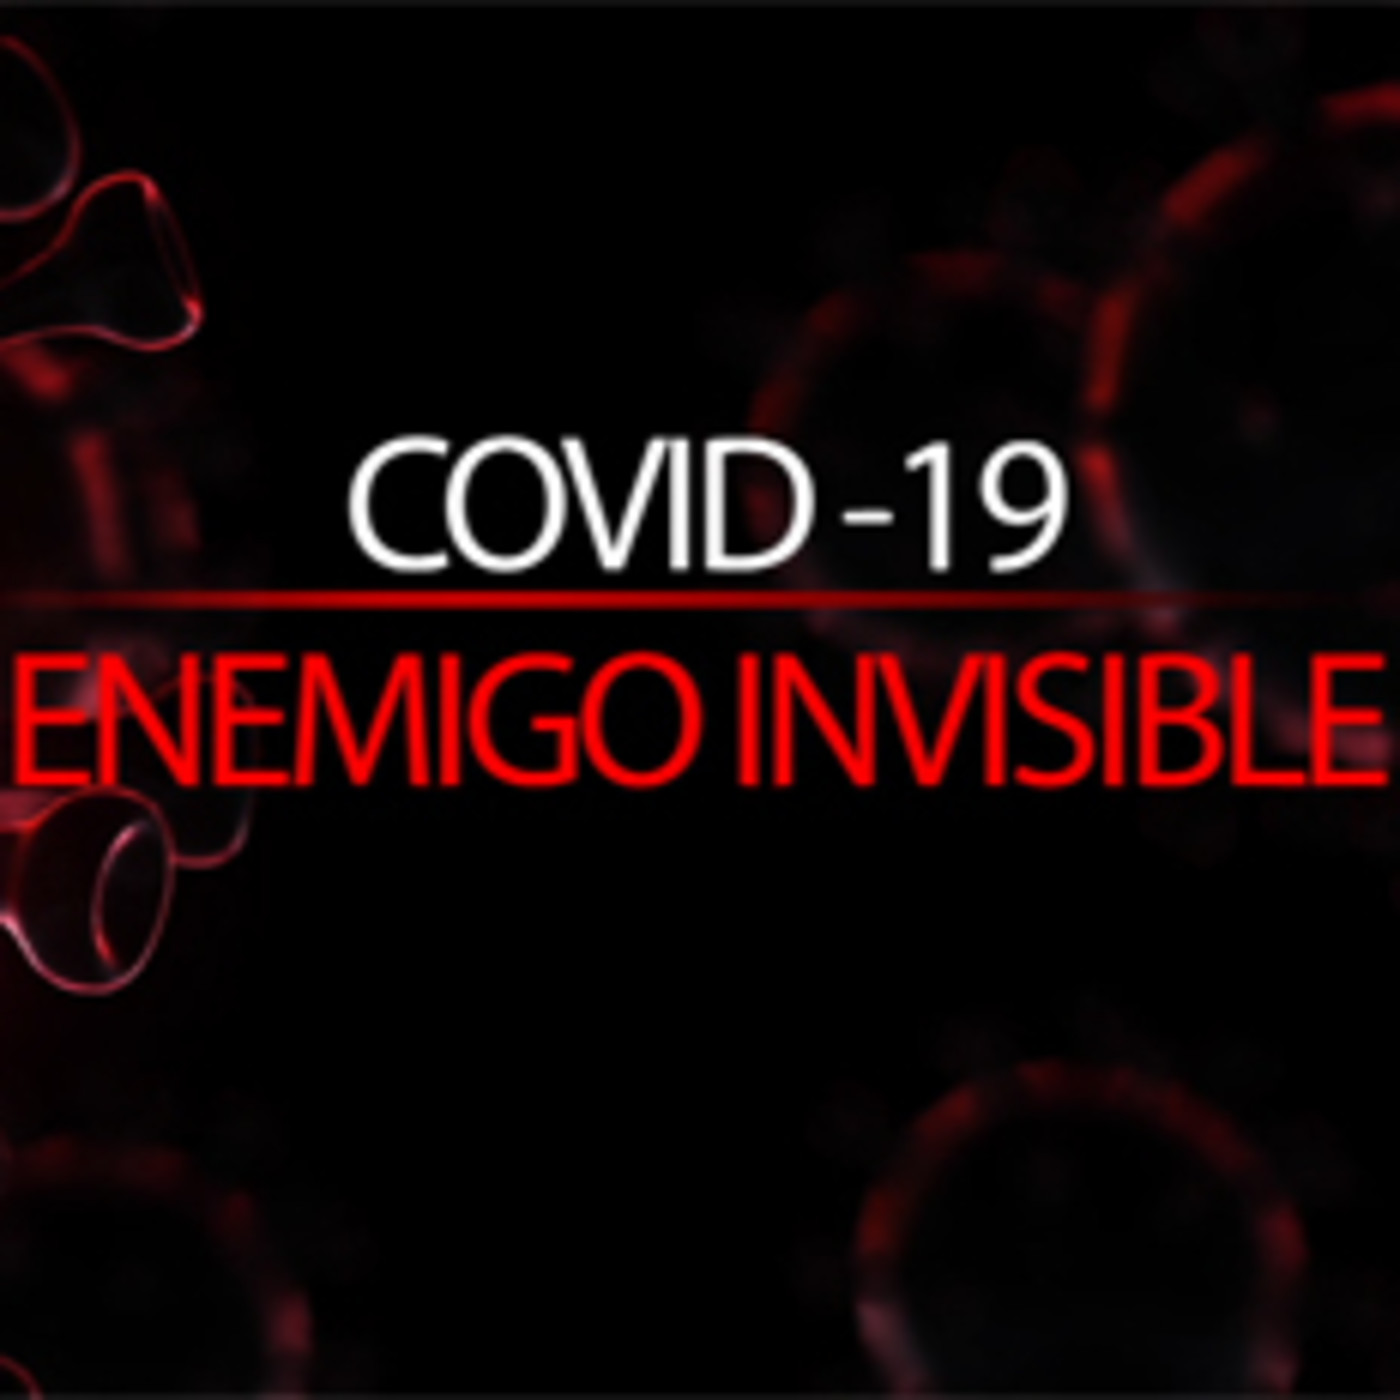 COVID-19: Enemigo invisible